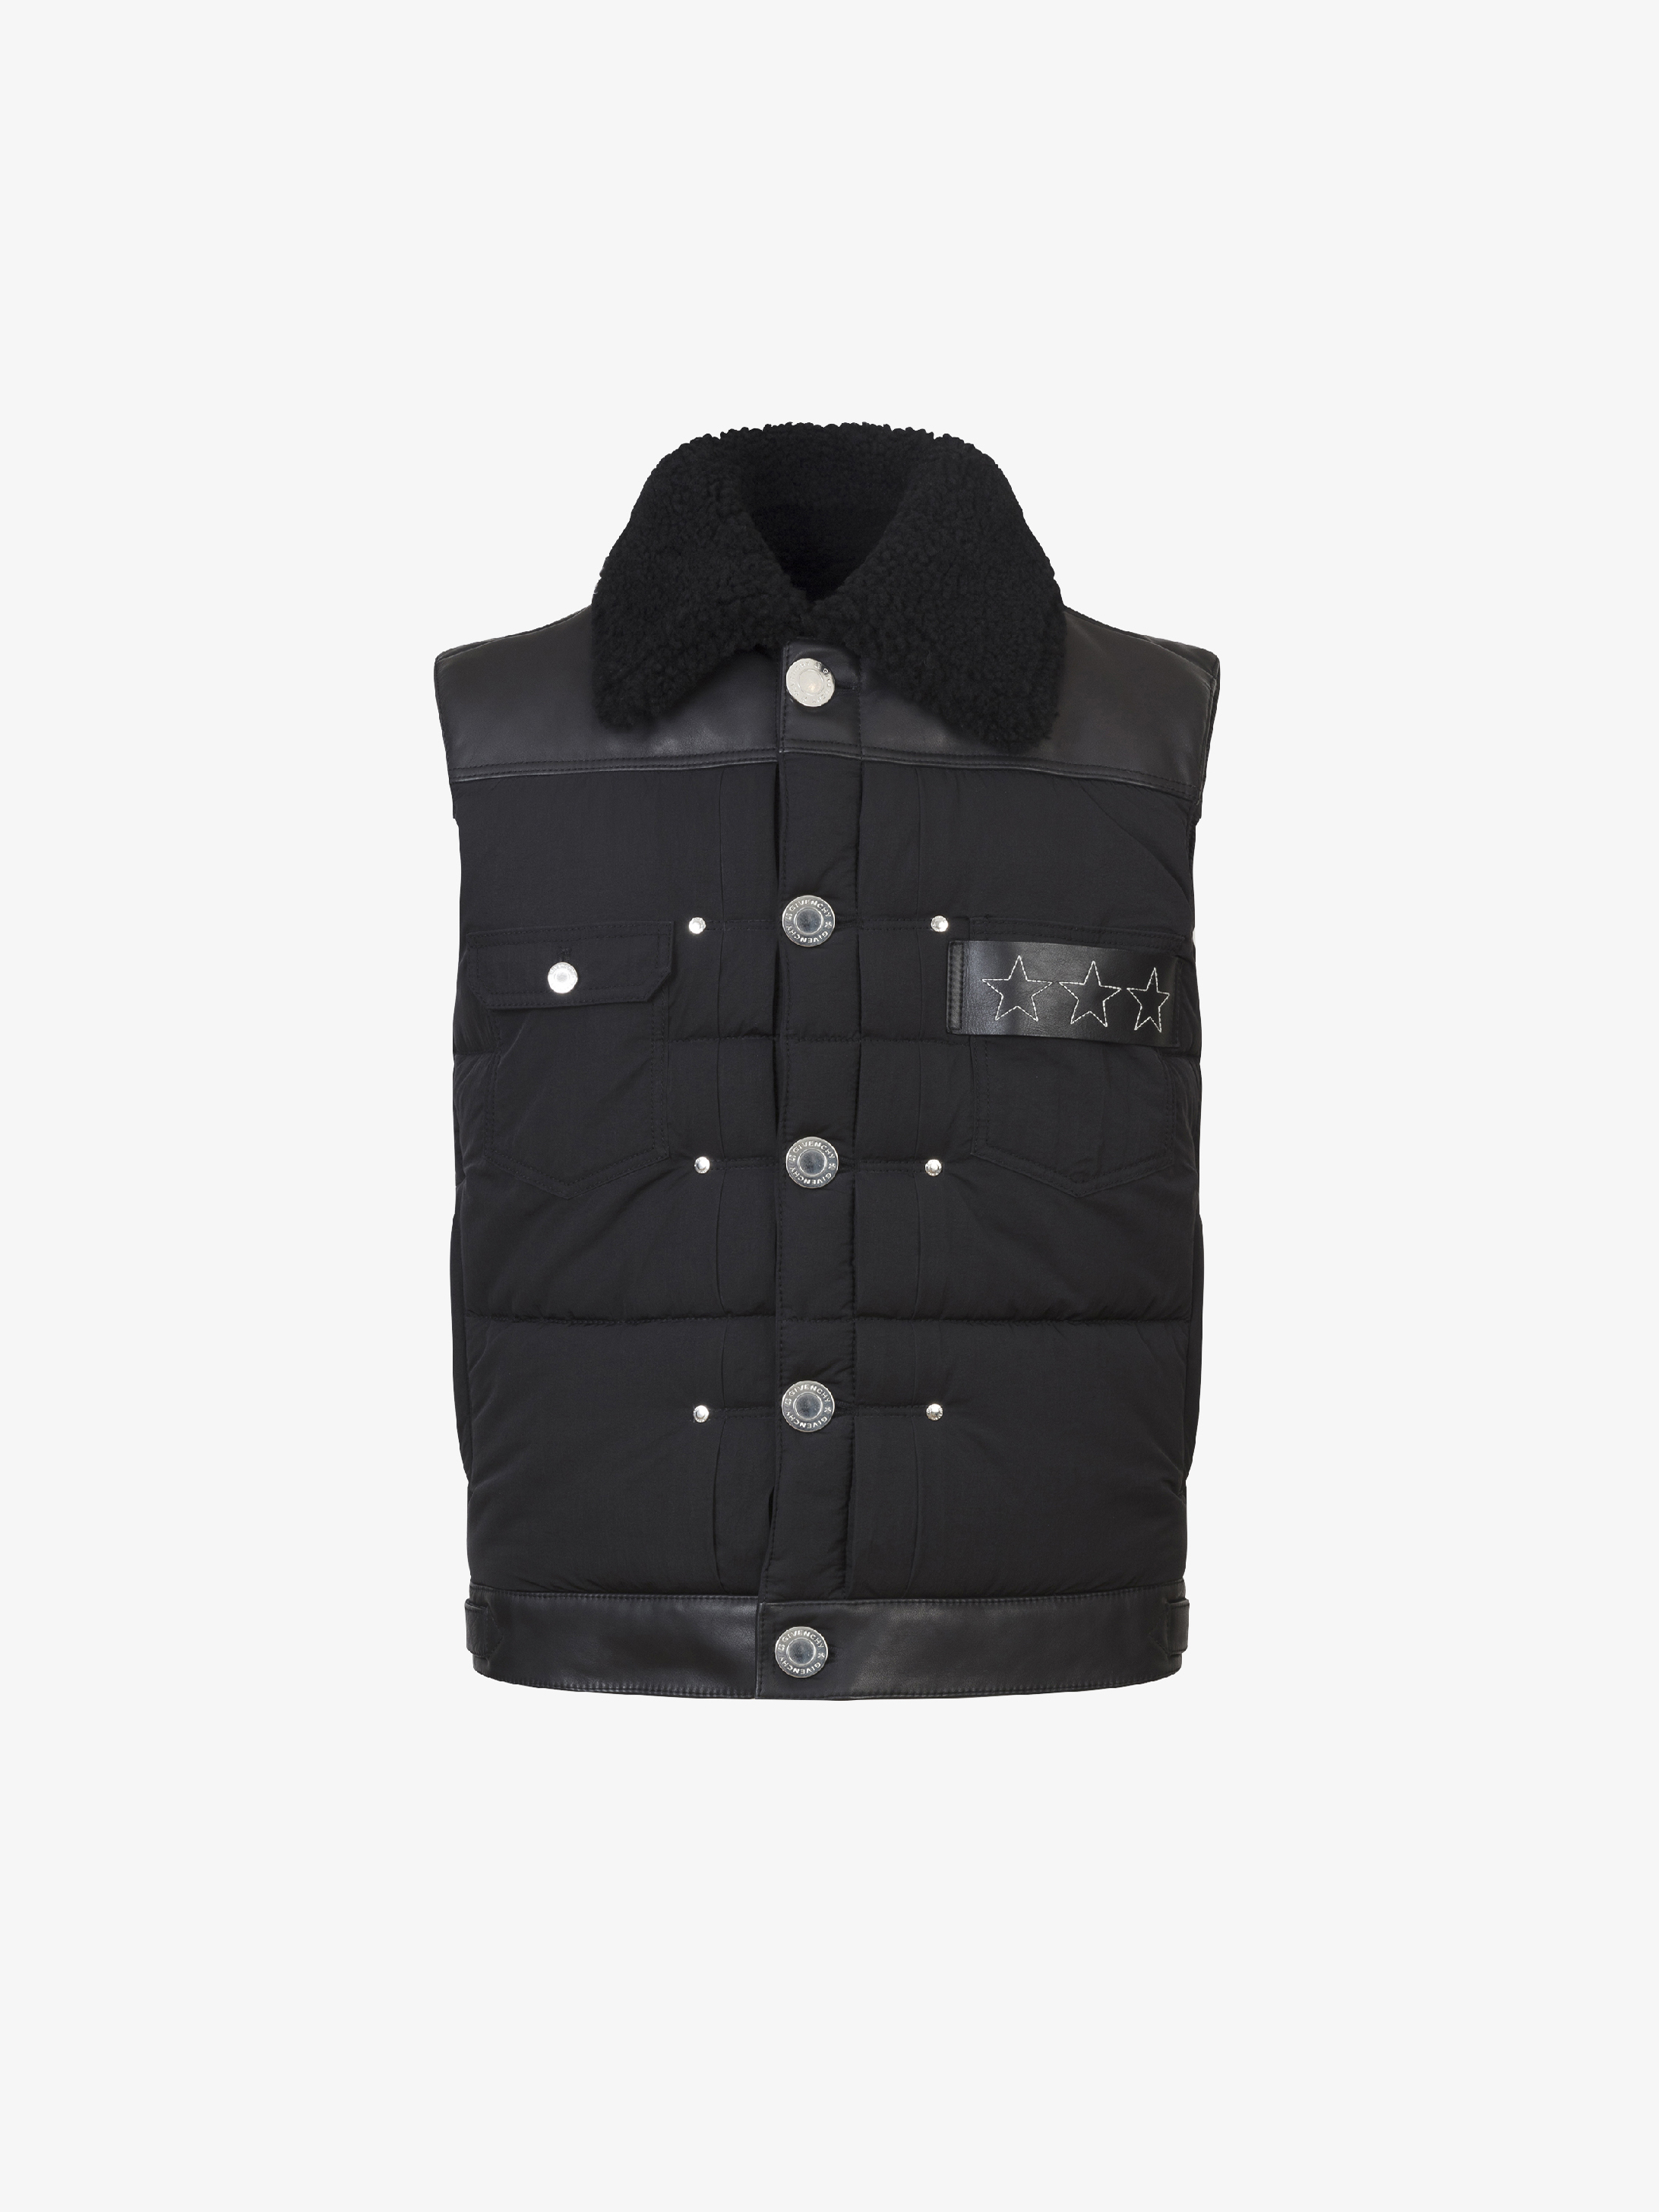 Sleeveless puffa jacket with leather details